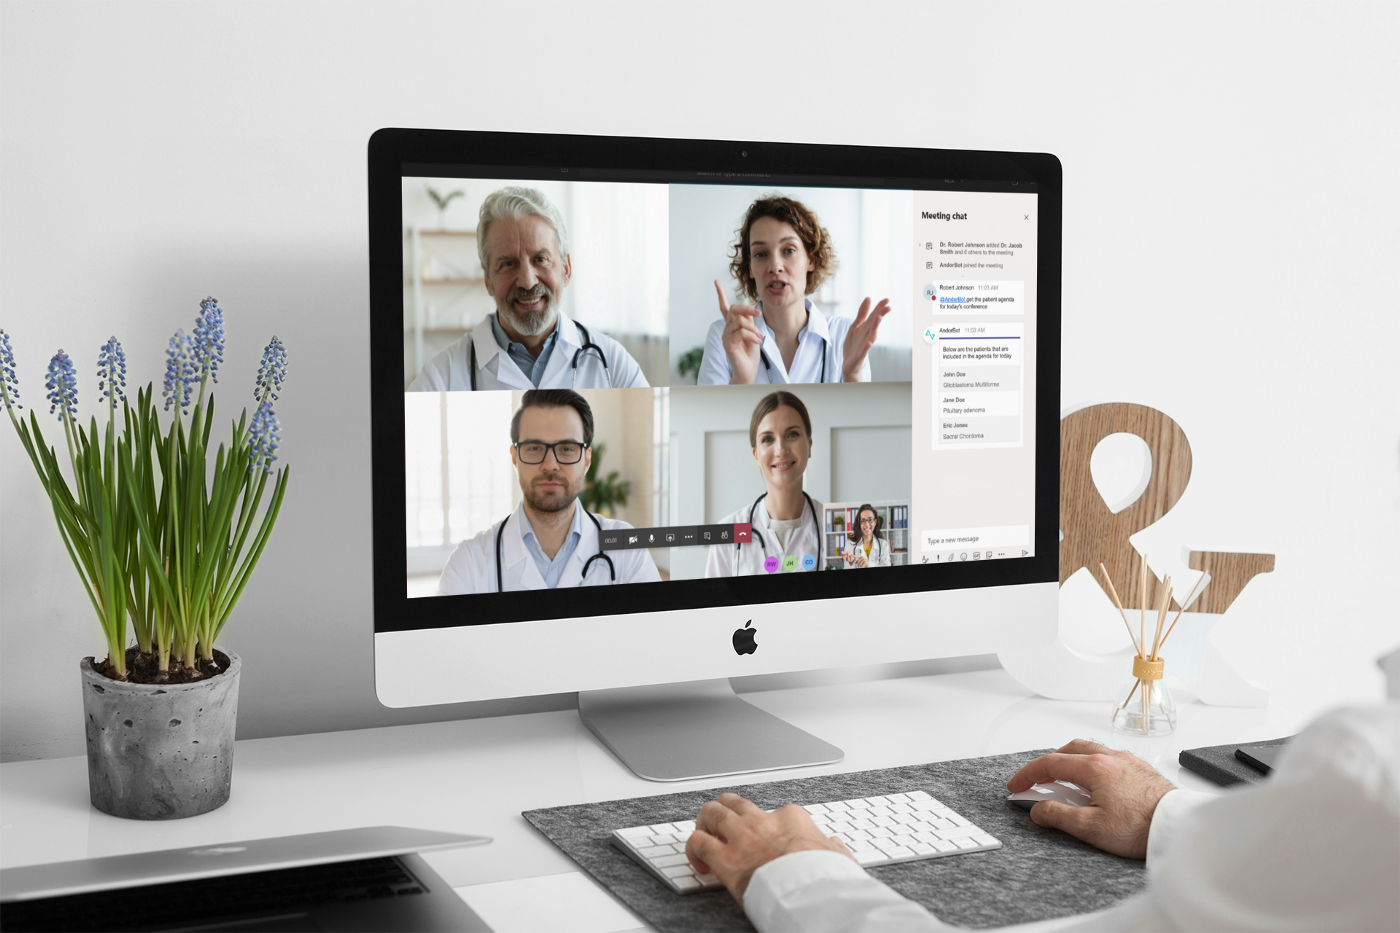 Computer screen with Andor Health video conference